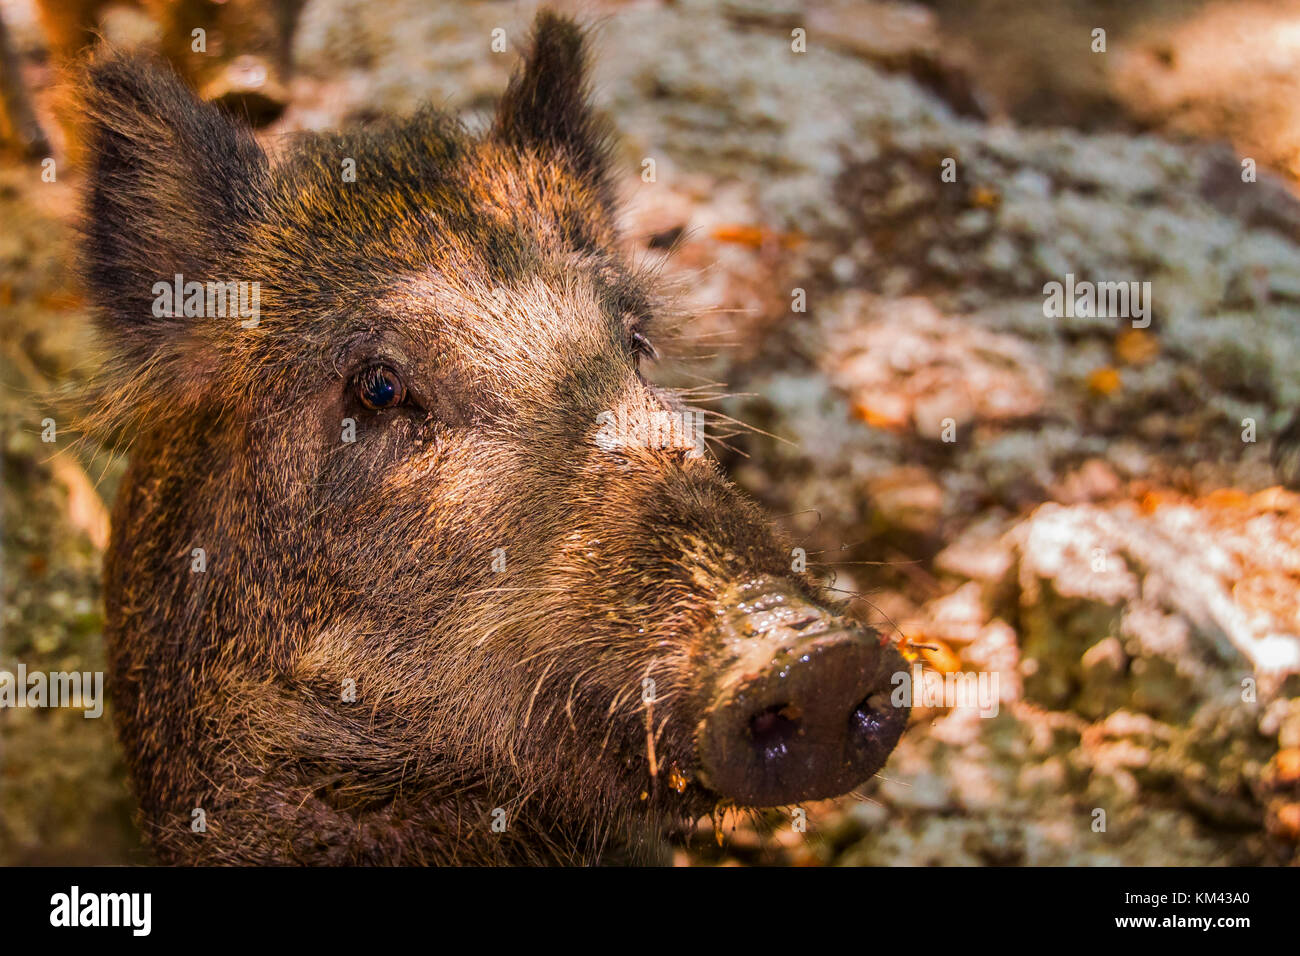 Wildlife pig - Stock Image